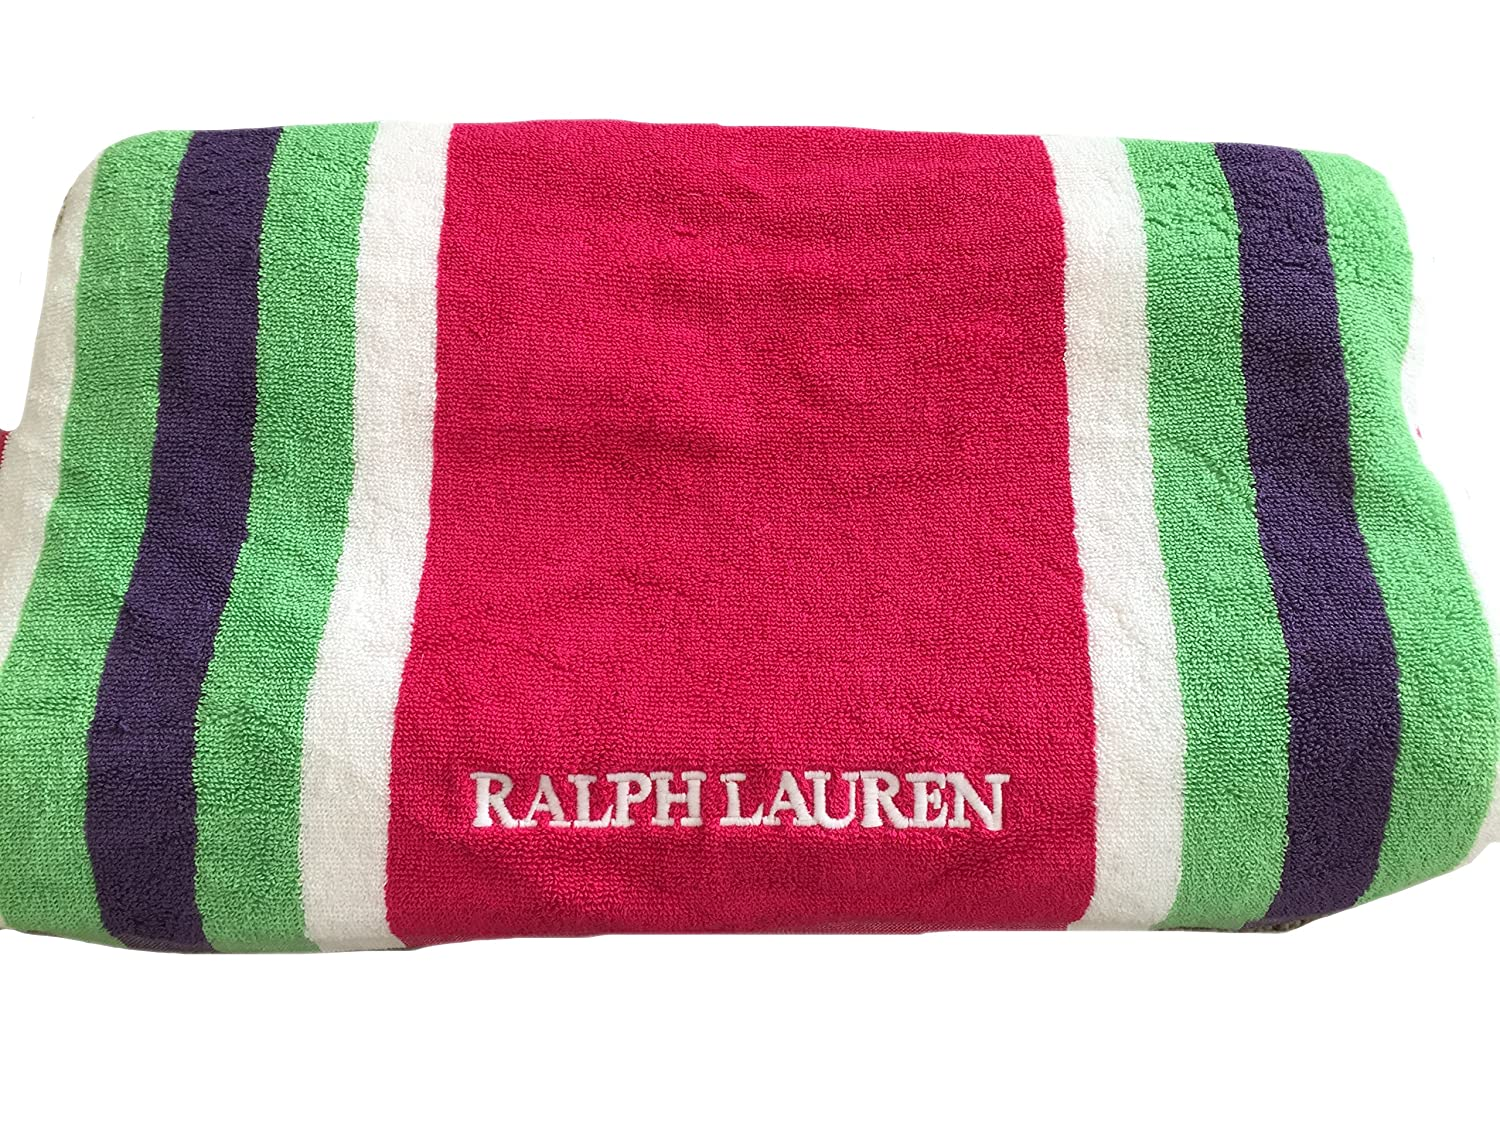 Ralph Lauren harbourview rayas rosa toalla de playa 100% algodón: Amazon.es: Hogar